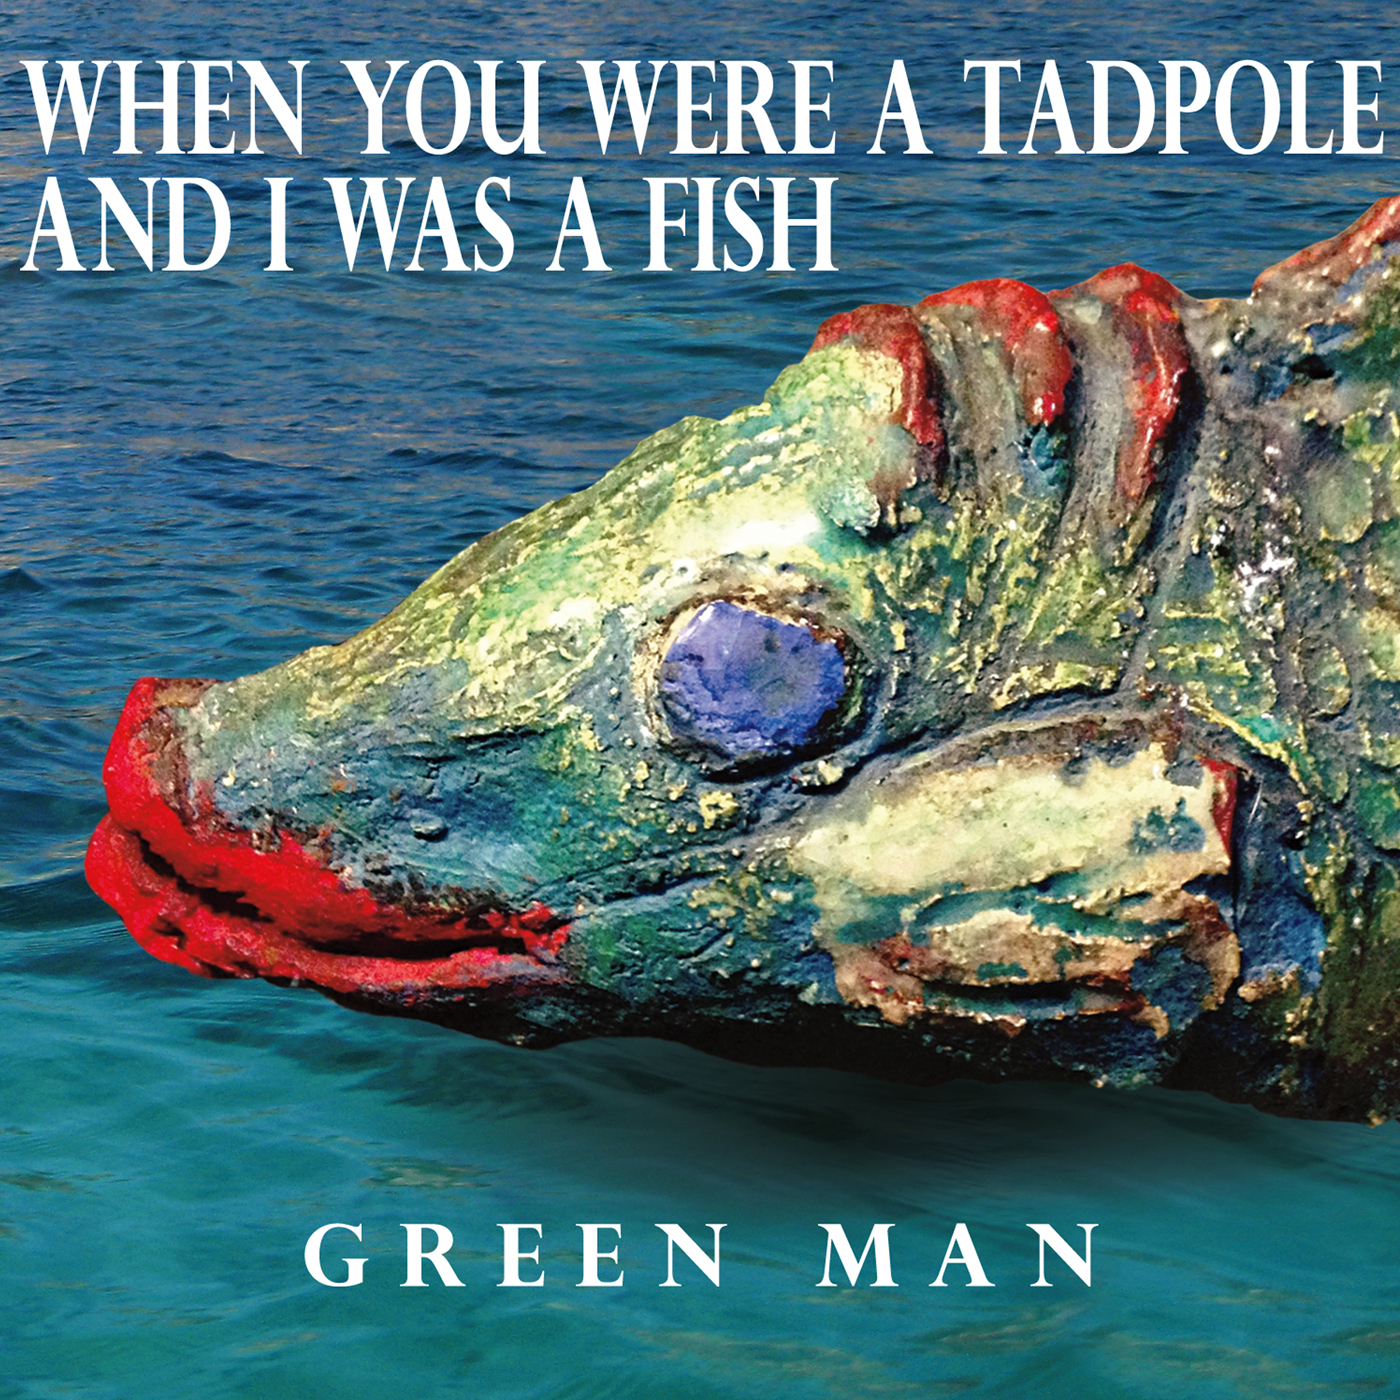 Green Man - When You Were a Tadpole and I Was a Fish (2014) [Alternative]